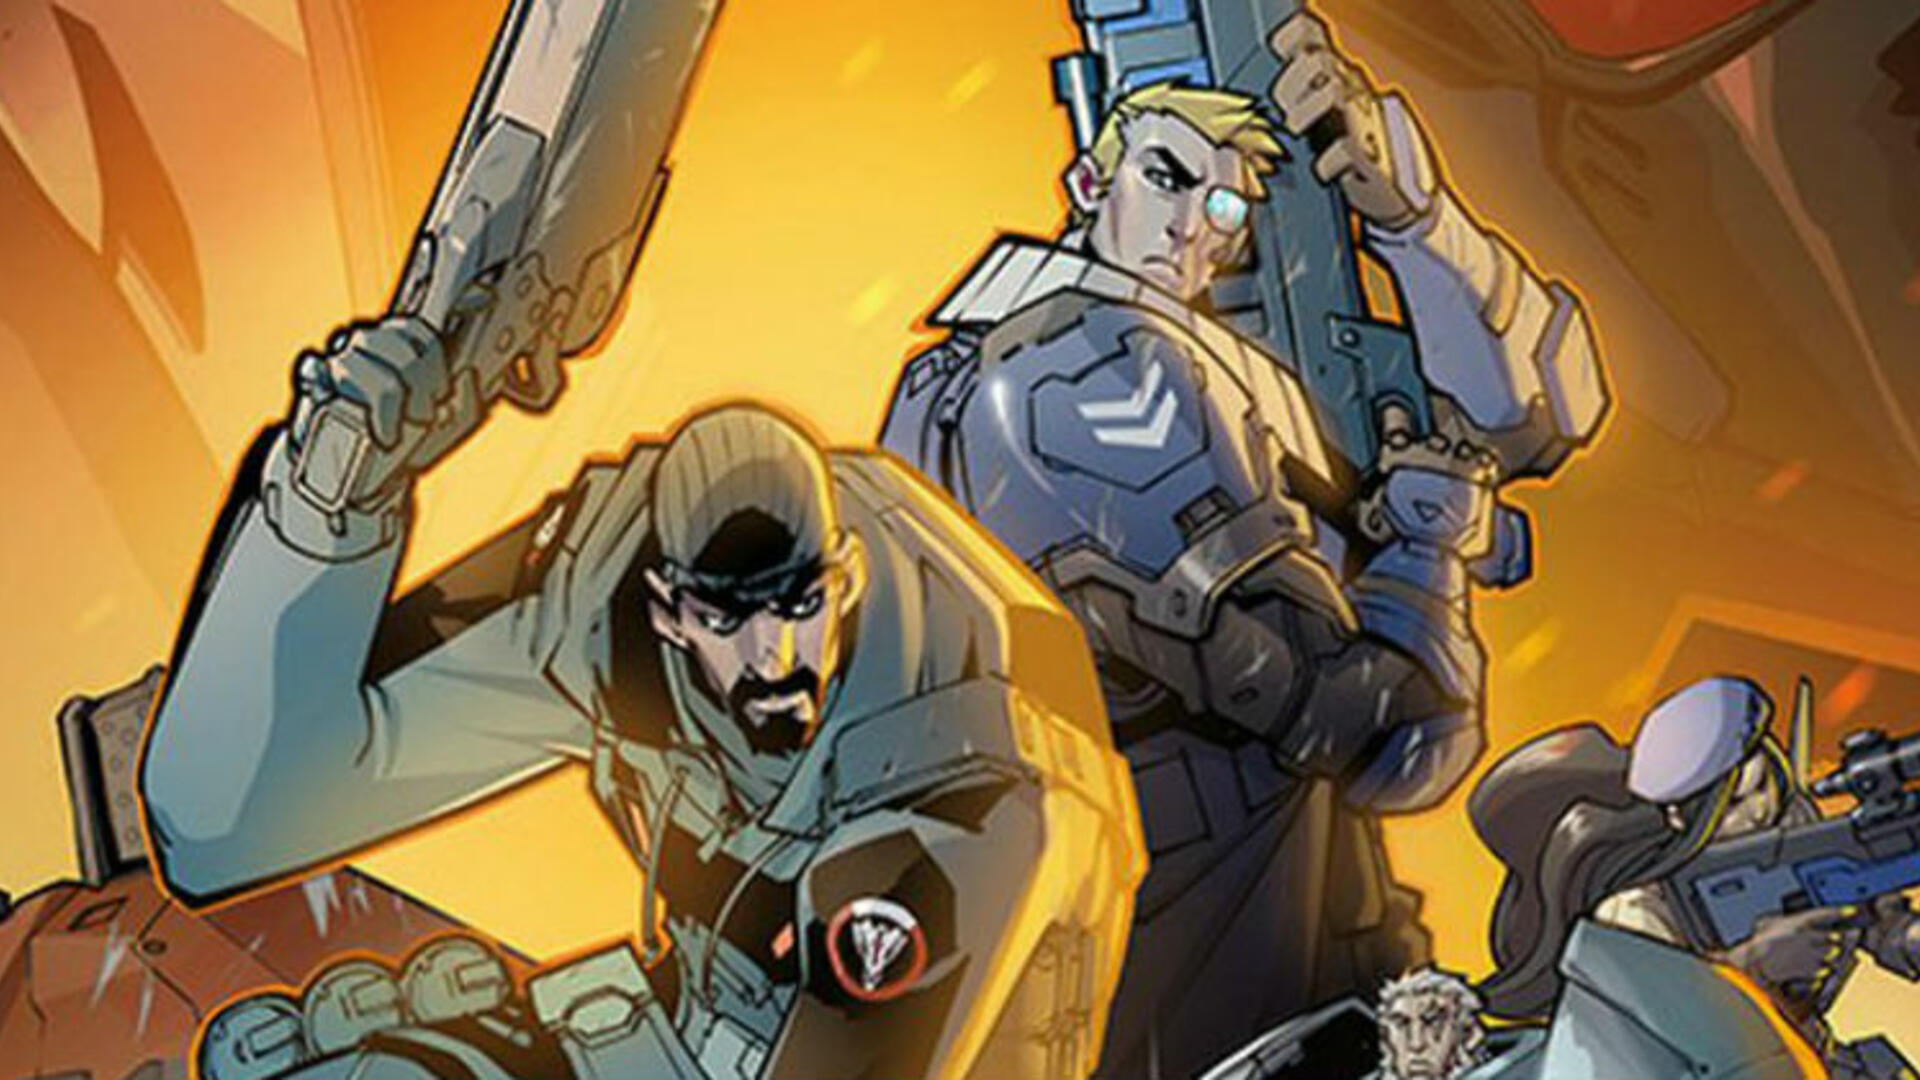 Canceled Overwatch Graphic Novel Would Have Limited Game